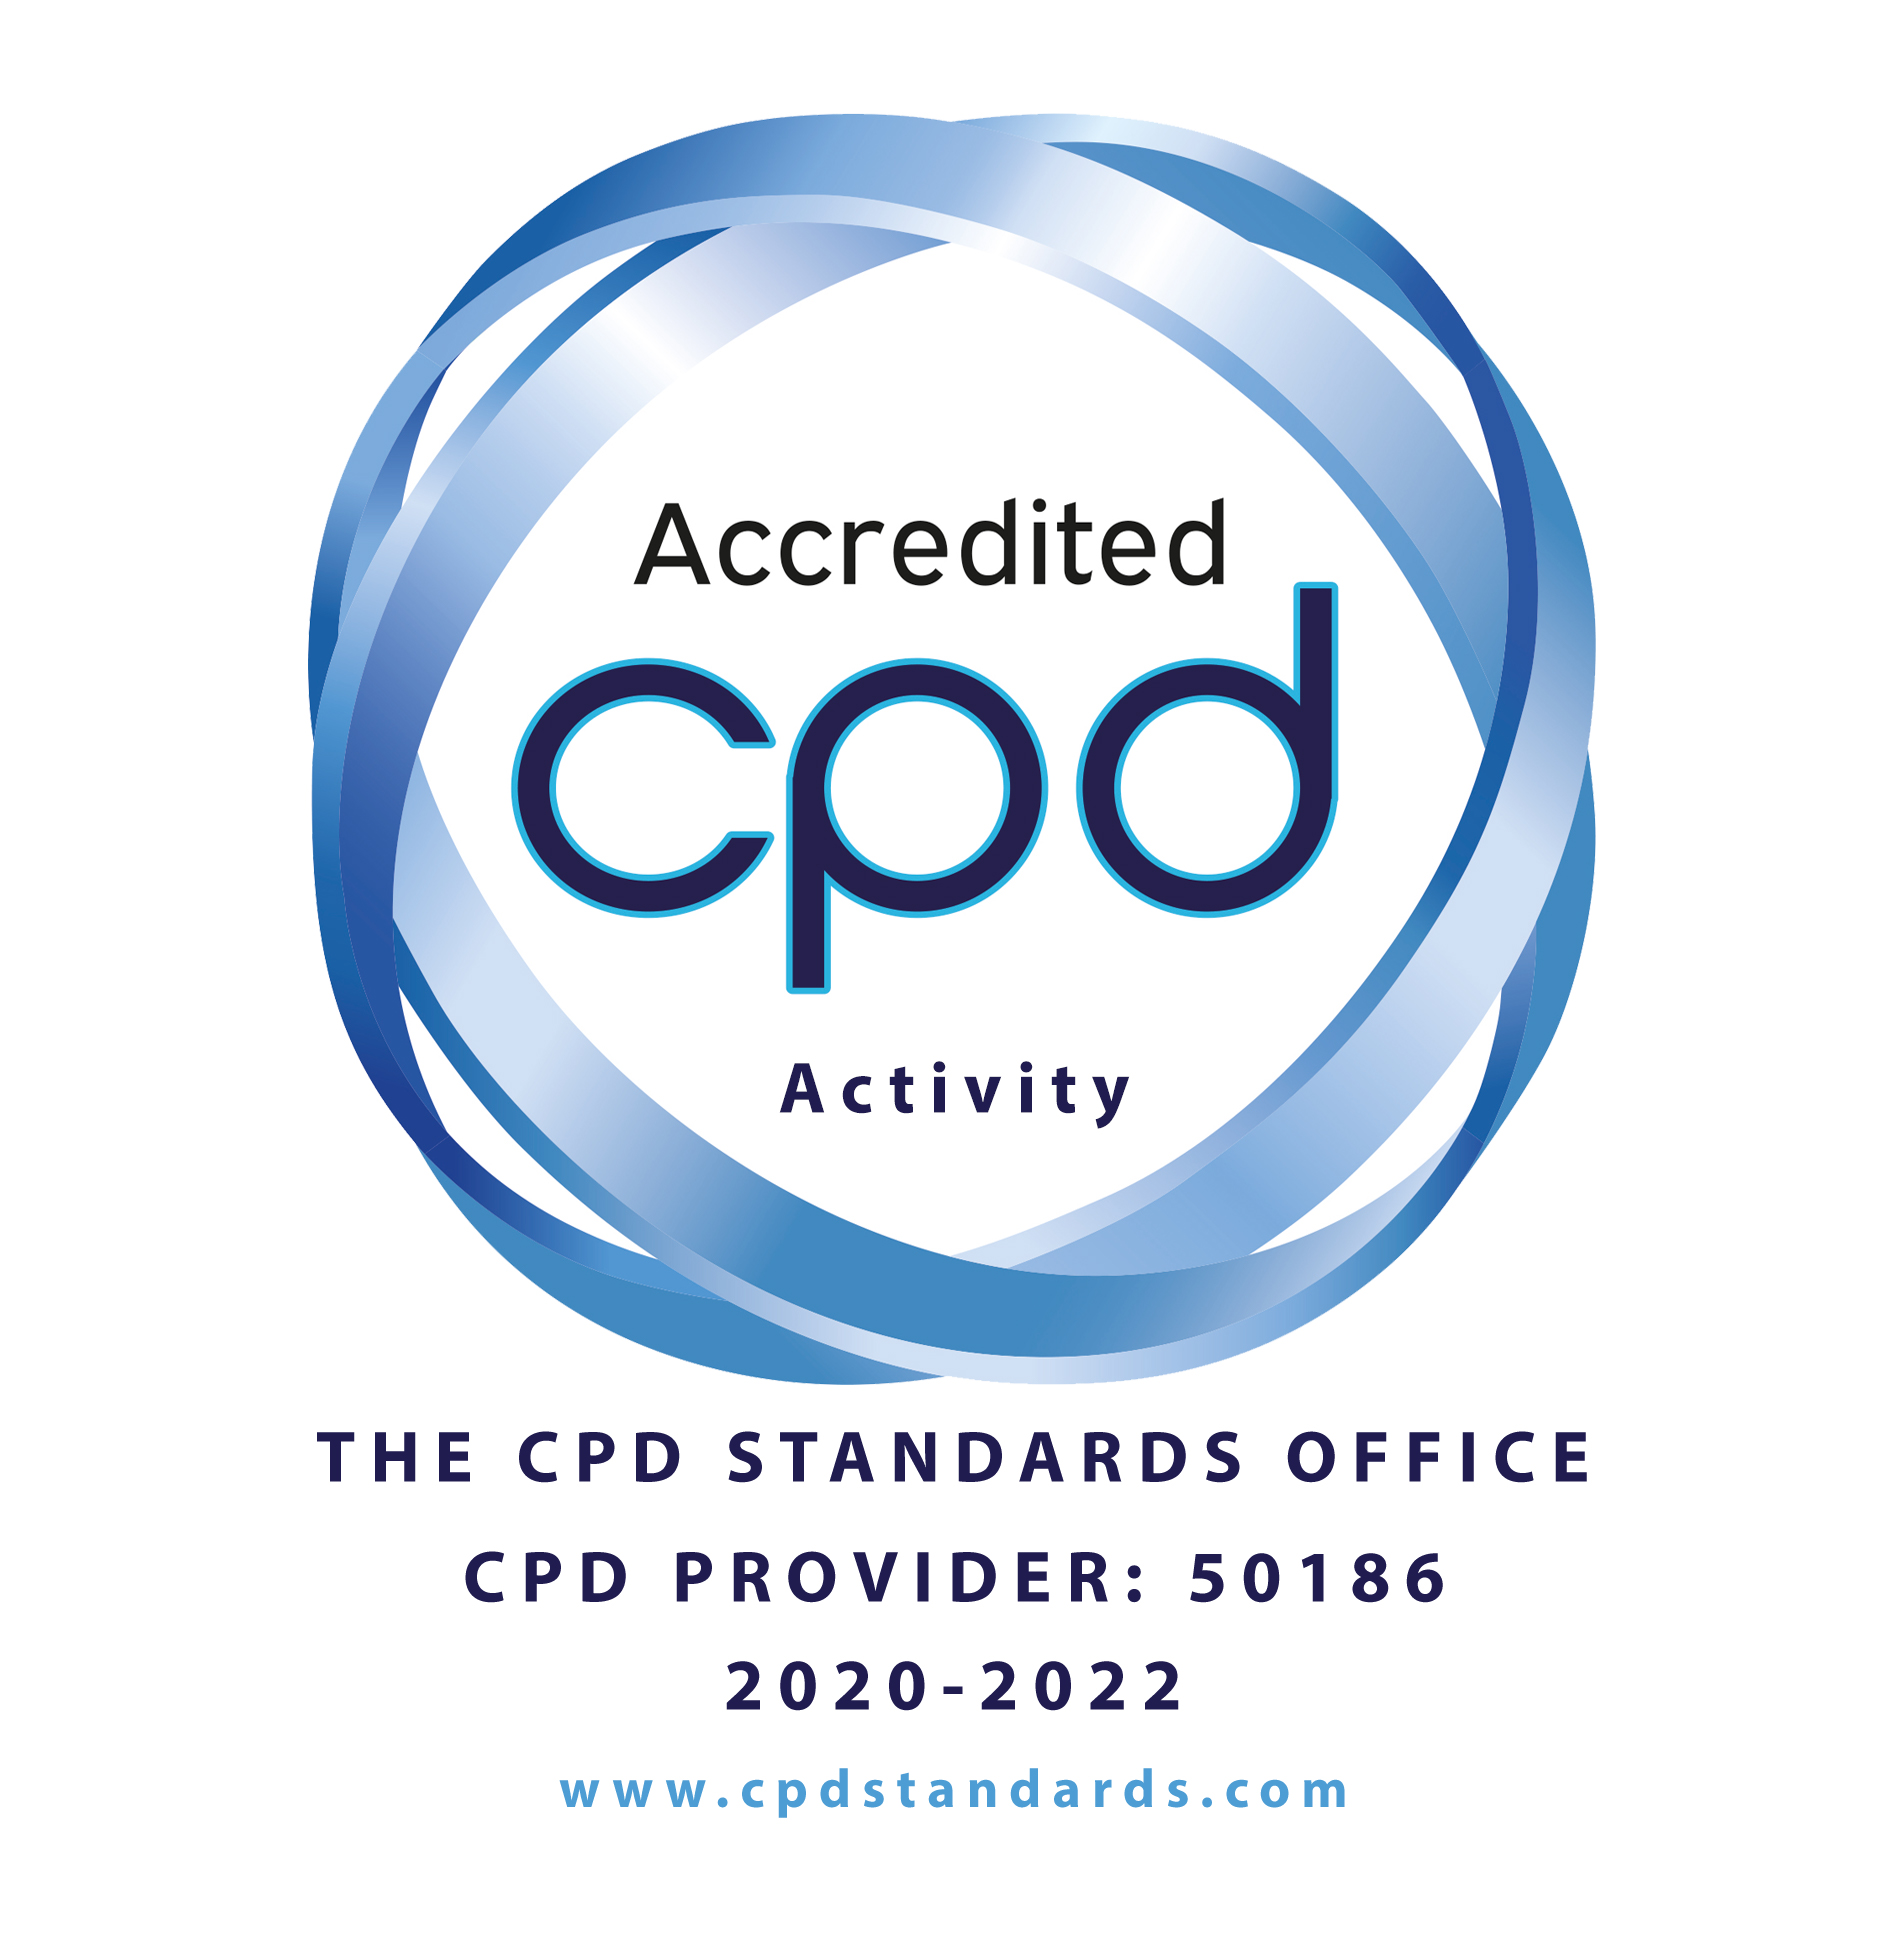 CPD accreditation Be a leader